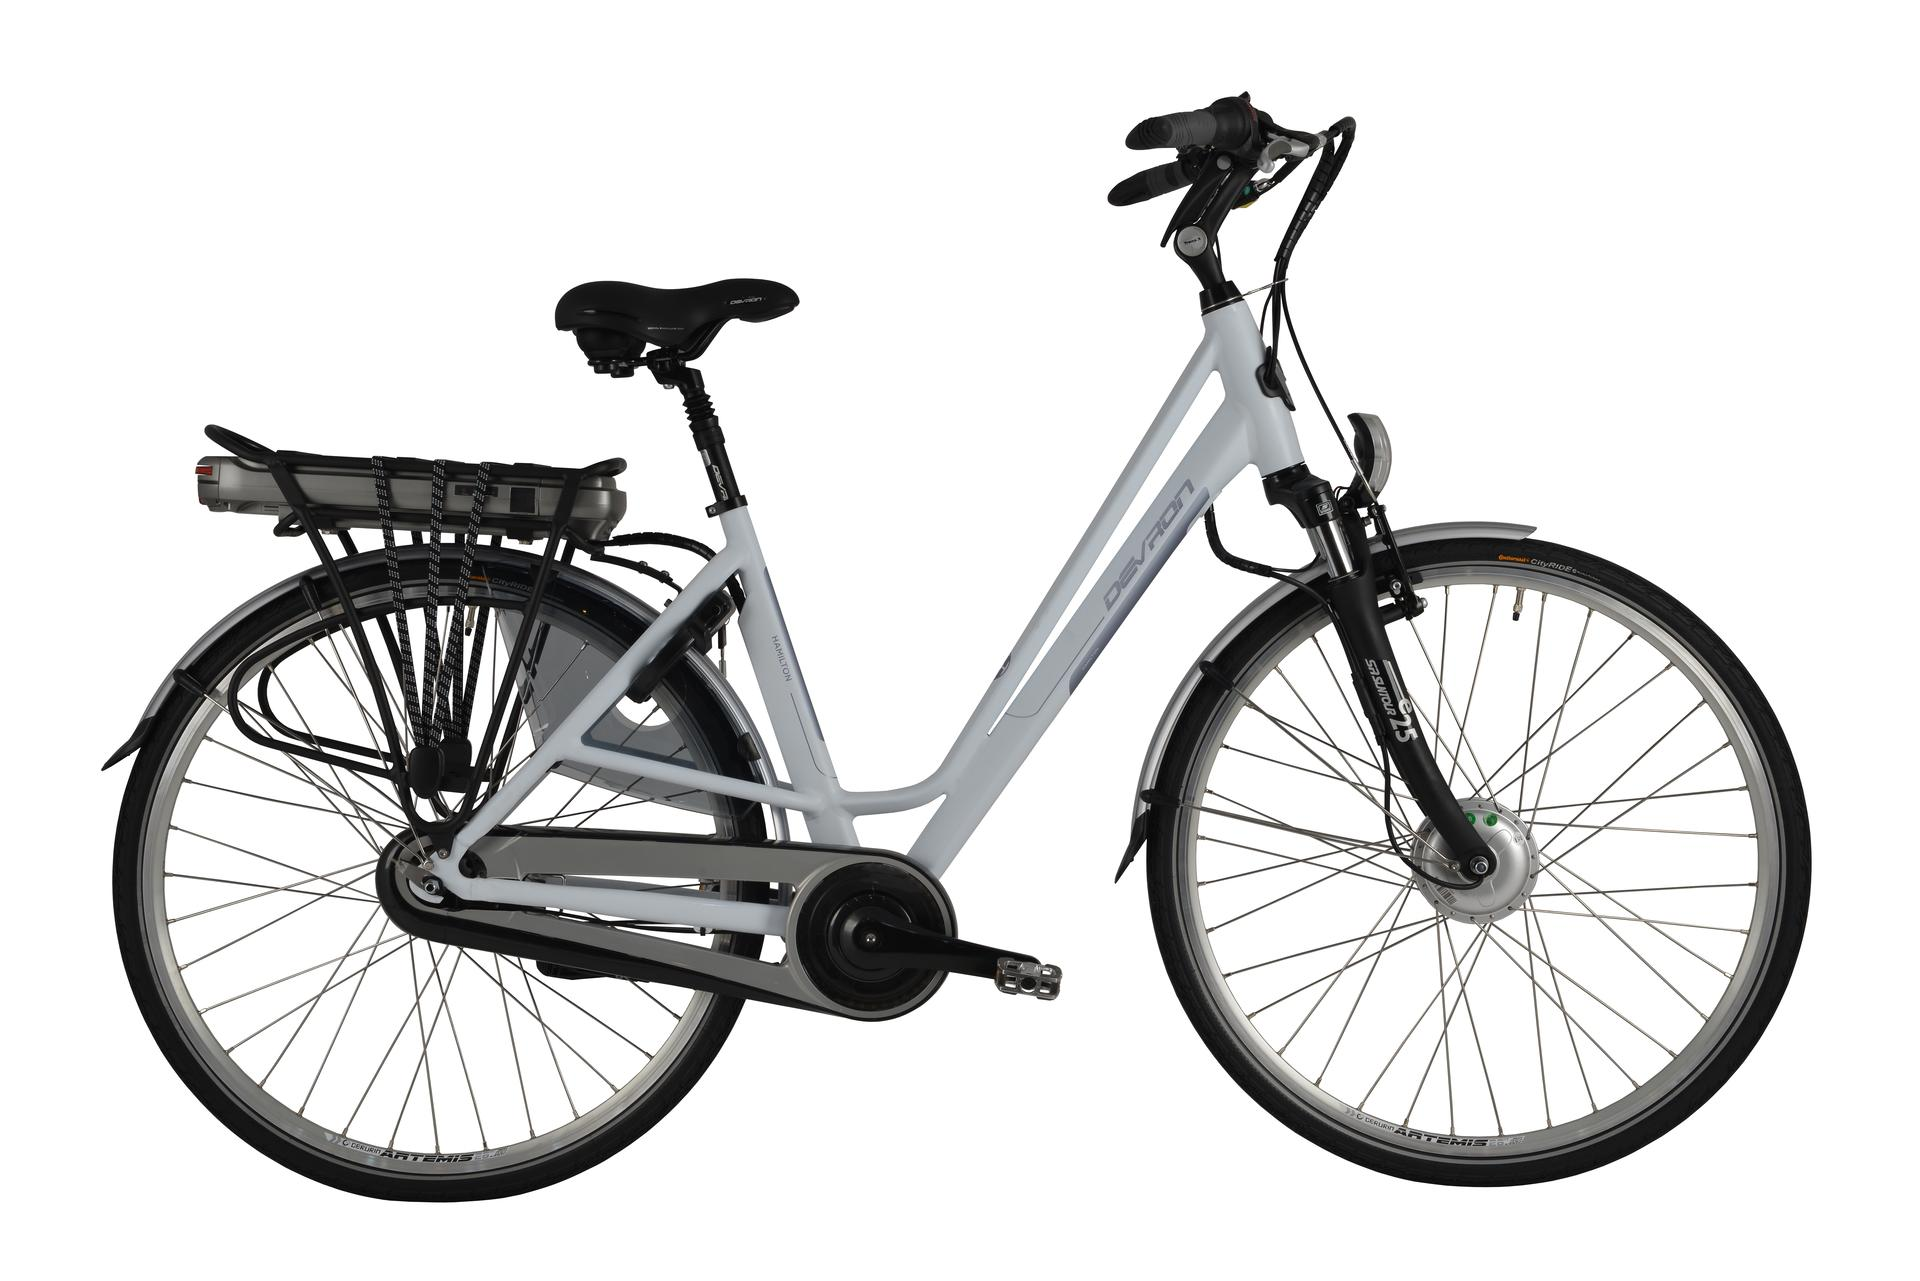 Bicicletta elettrica city bike Devron 28022 Matt White 490 mm --28